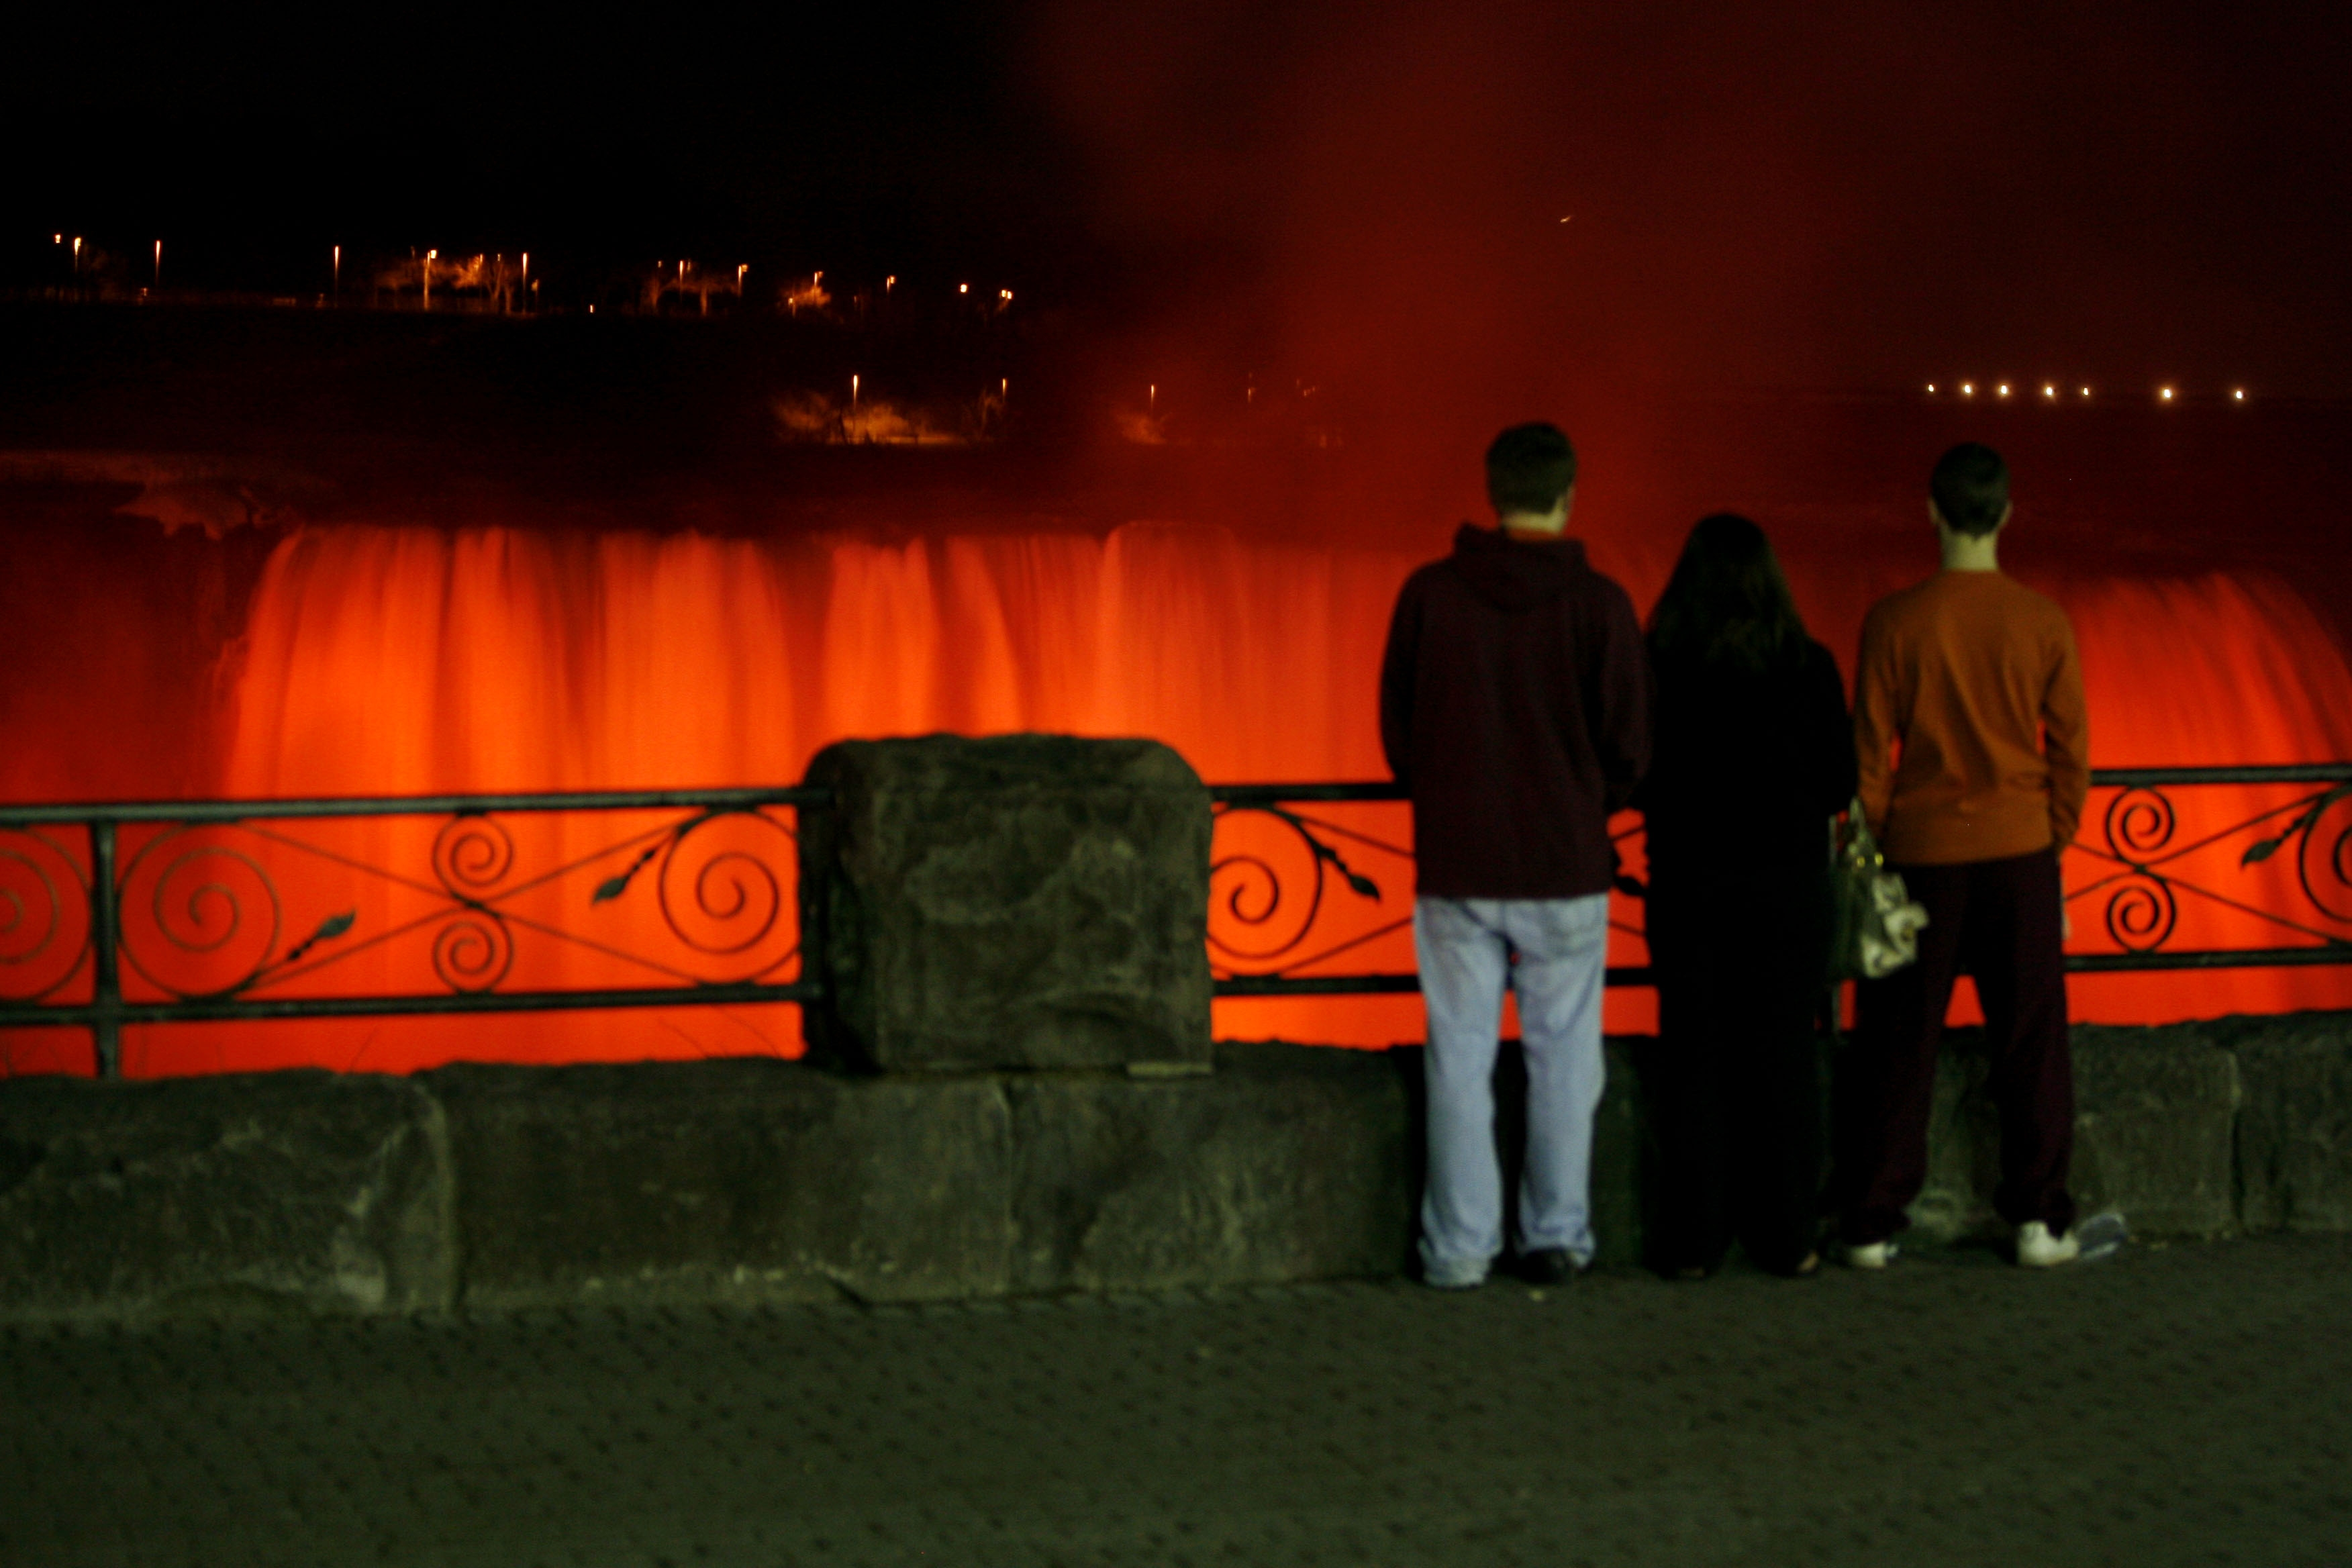 University at Buffalo students Tim Grant of Williamsville, left, Gina Grasta of Rochester and Chris Hodge of Union, N.J., watch as Niagara Falls is illuminated in red in 2007.